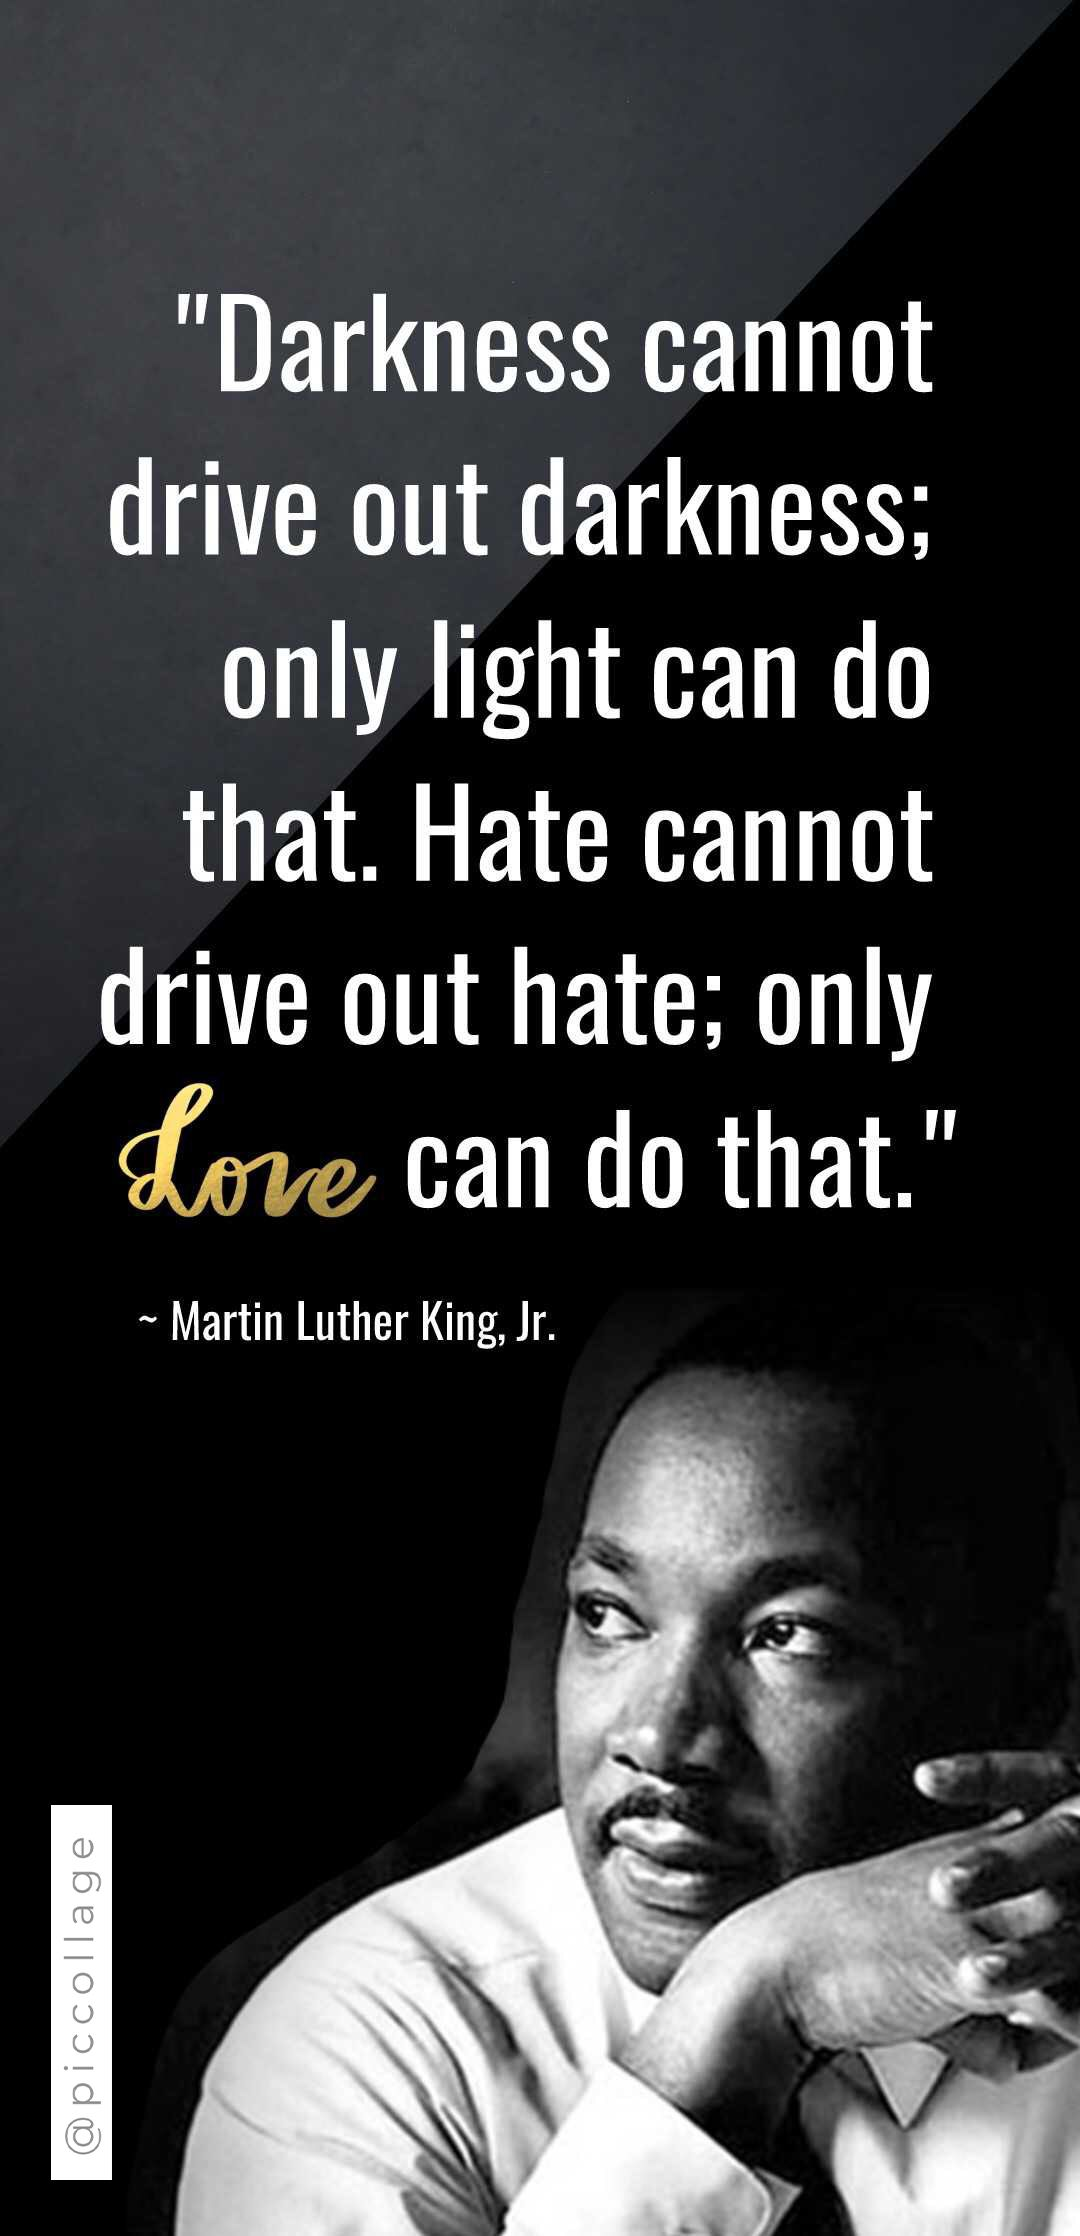 8 Inspiring Martin Luther King Jr Quotes To Share Martin Luther King Jr Quotes Martin Luther King Martin Luther